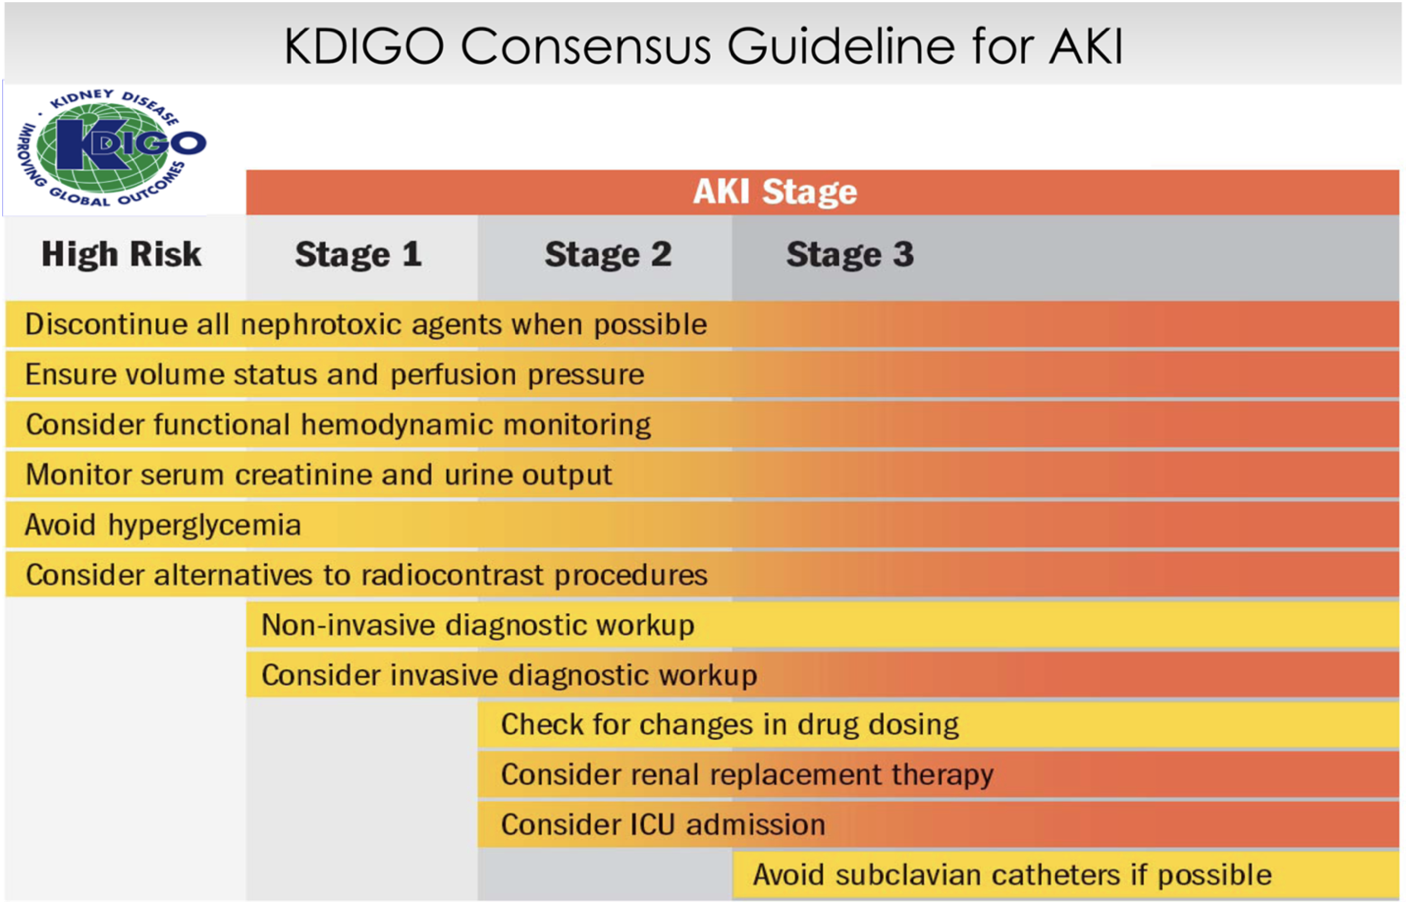 The shading indicates the importance of the intervention - the darker the shade, the more important KDIGO believes the intervention is.  (Image)